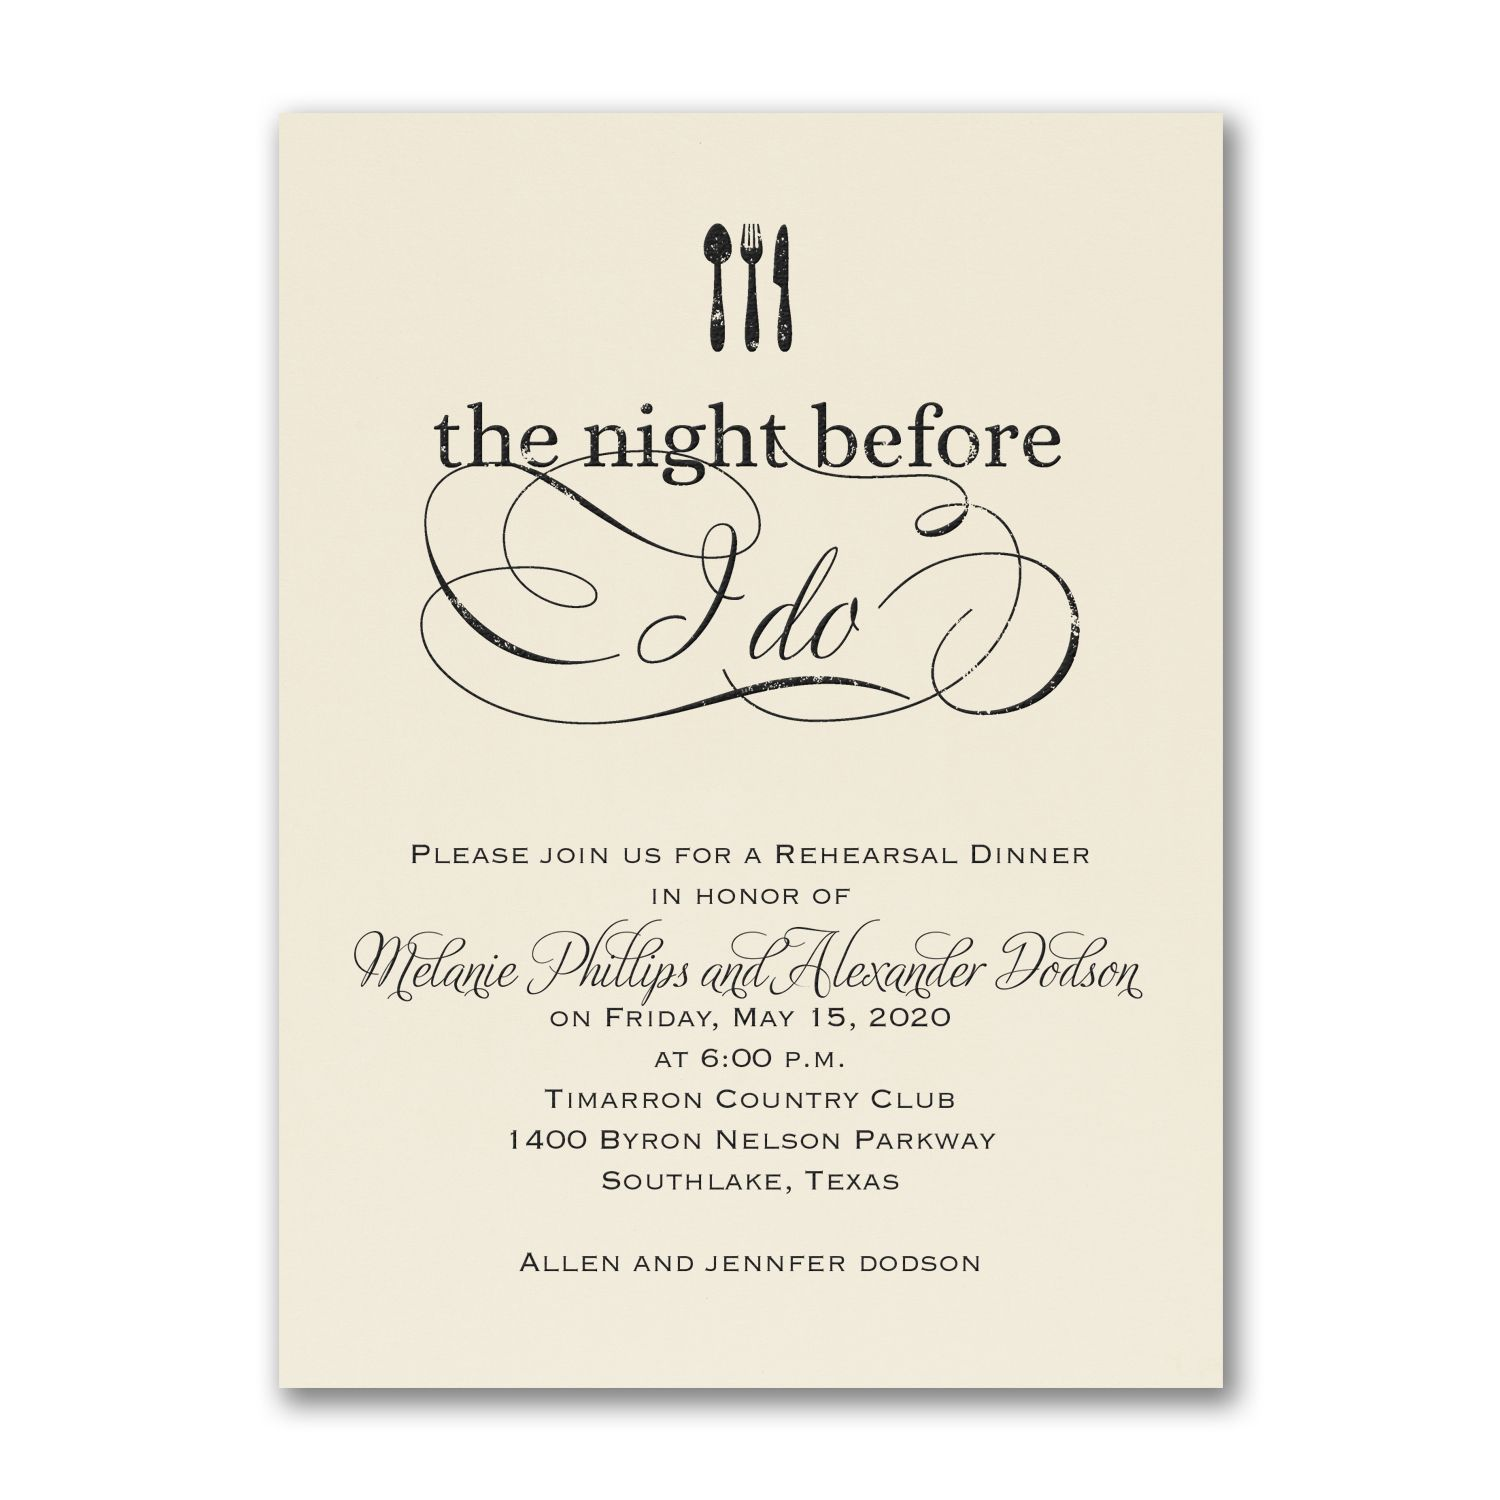 The Night Before I Do Rehearsal Dinner Invitations choose color ...